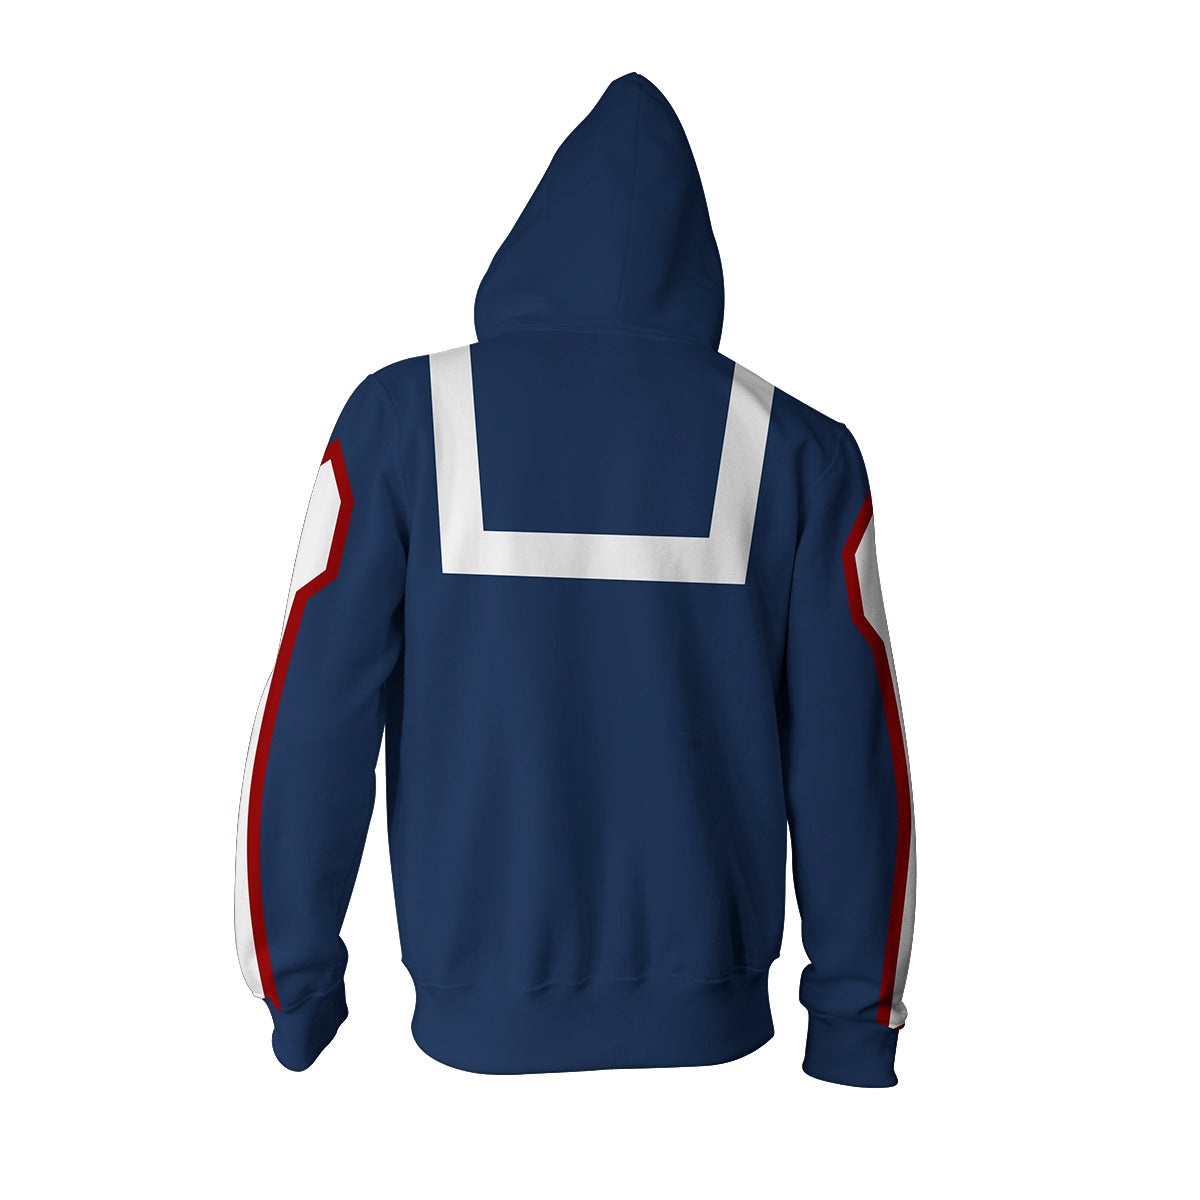 Boku No Hero Academia Zip Up Hoodie